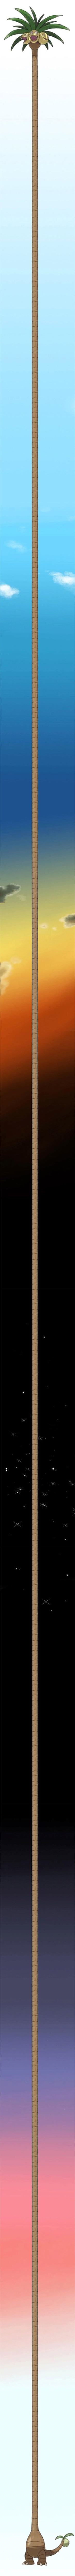 pokemon exeggutor night sky